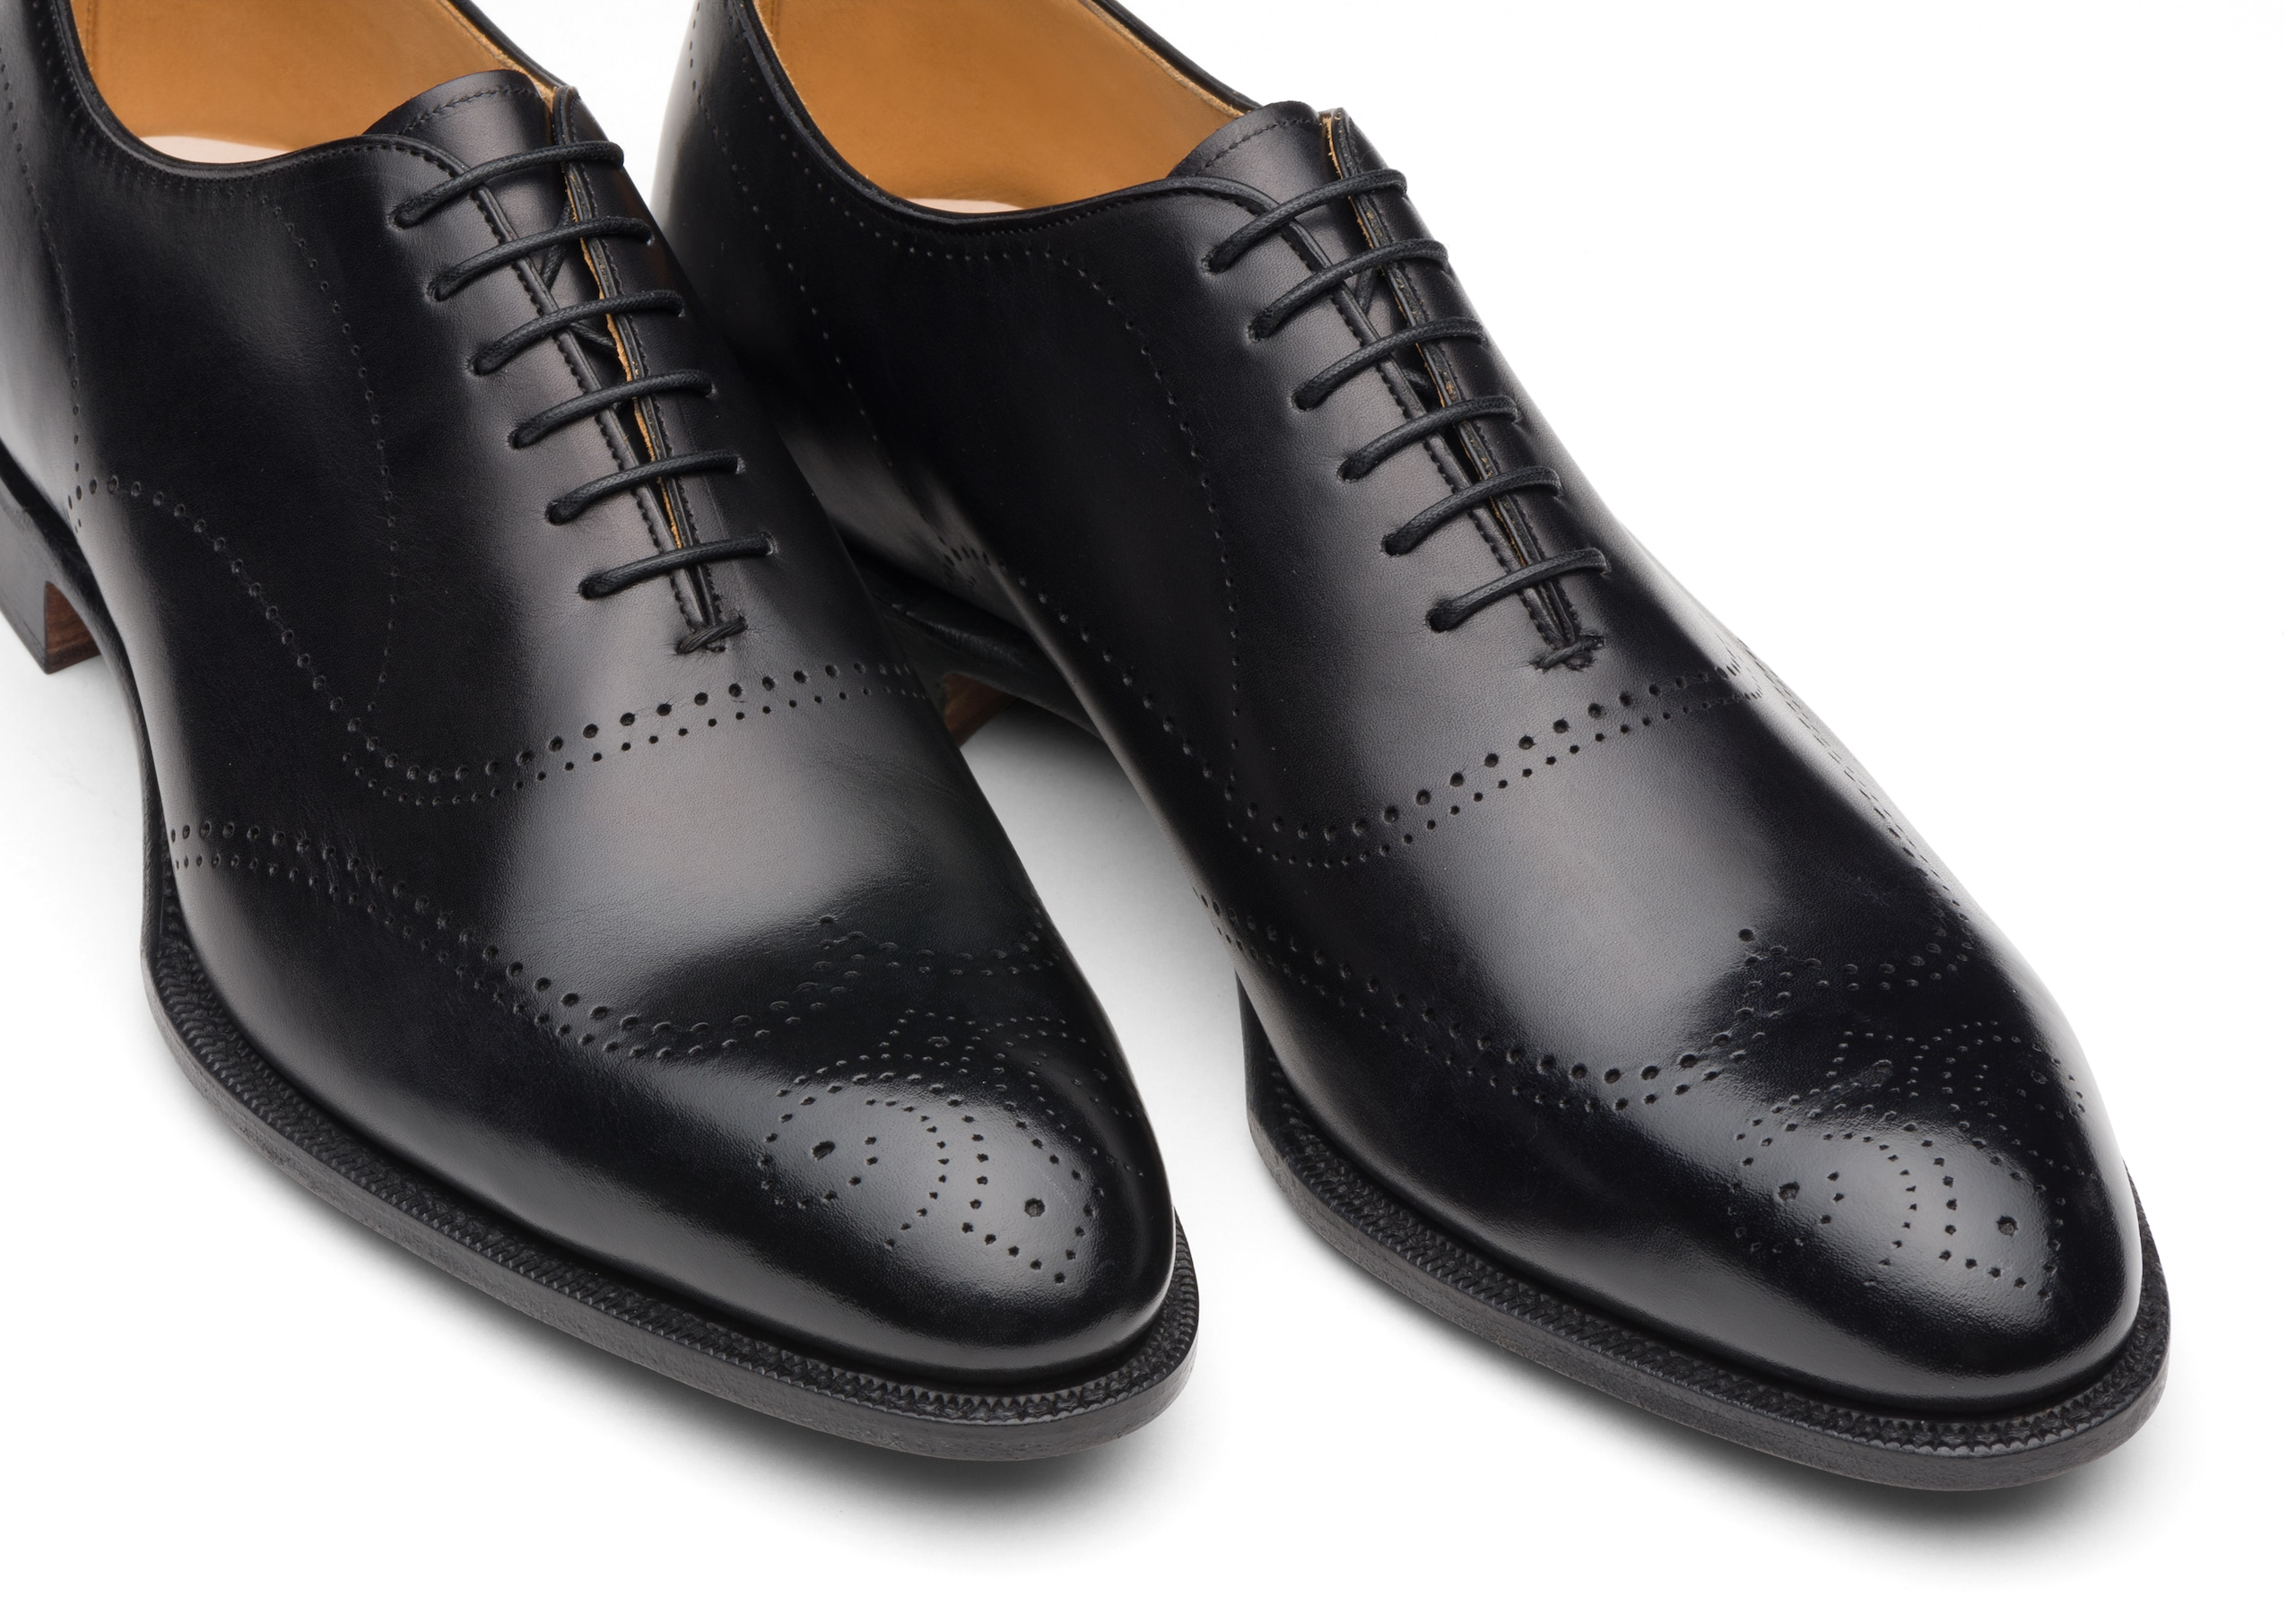 Dickens Church's Masai Leather Oxford Brogue Black